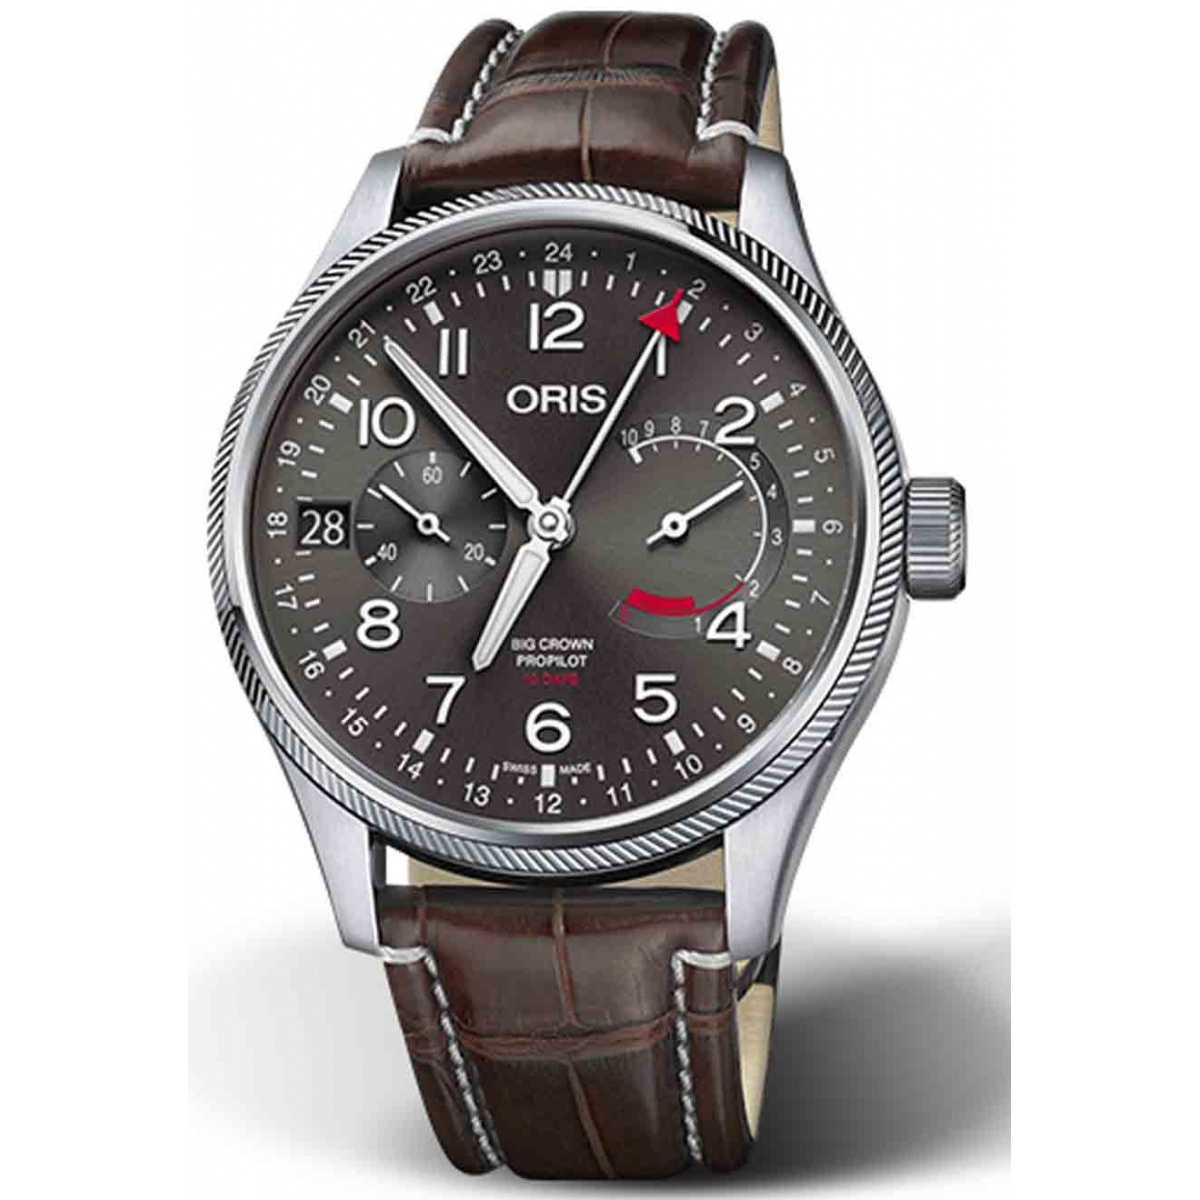 ORIS BIG CROWN PROPILOT CALIBRE 114 - 100 M ∅44 mm, Esfera gris, brazalete marrón